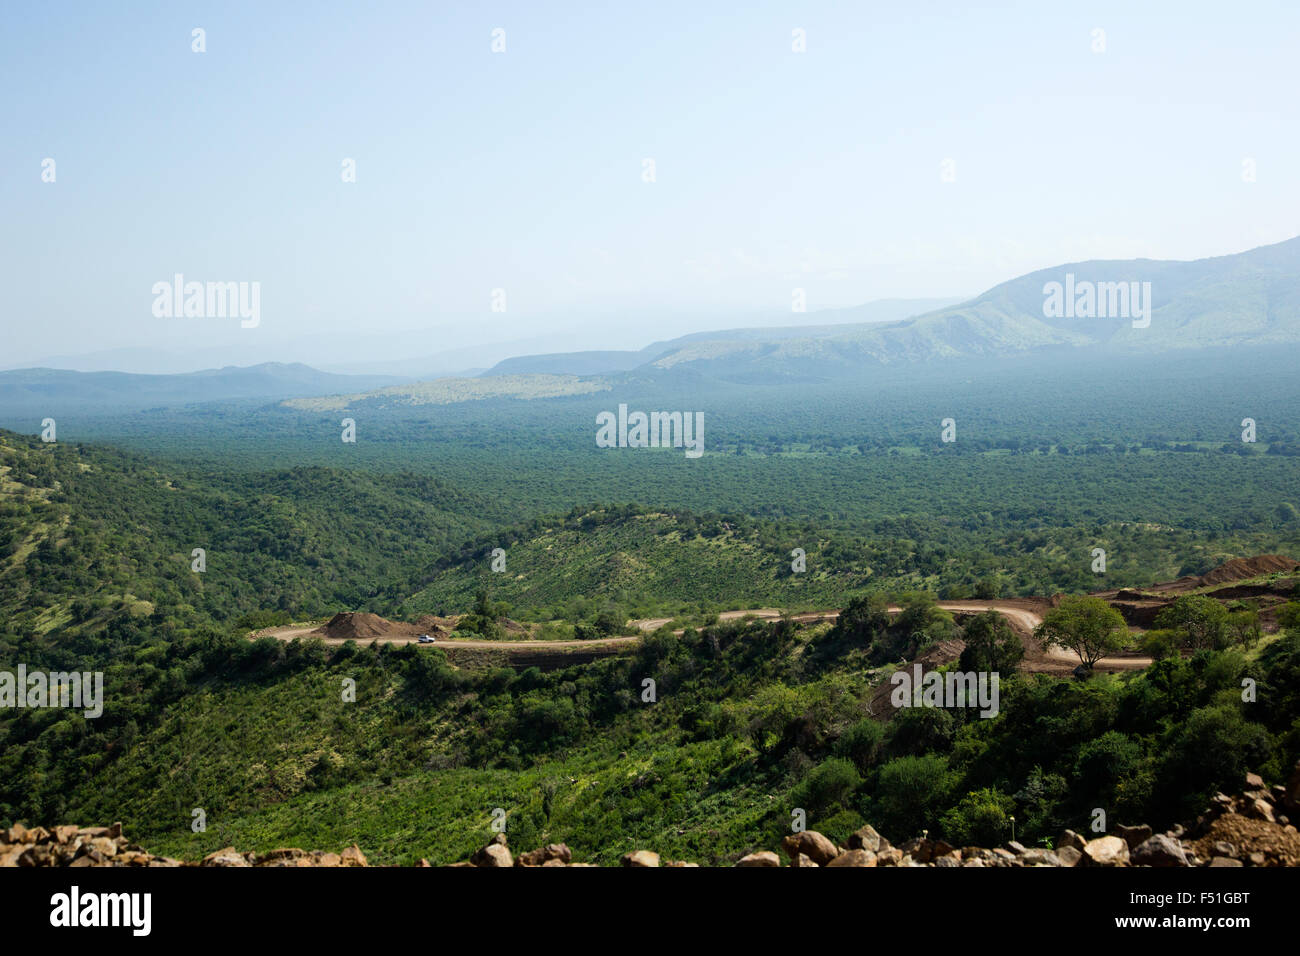 Elevated view over the Omo Valley in Mursi country, Ethiopia, Africa - Stock Image